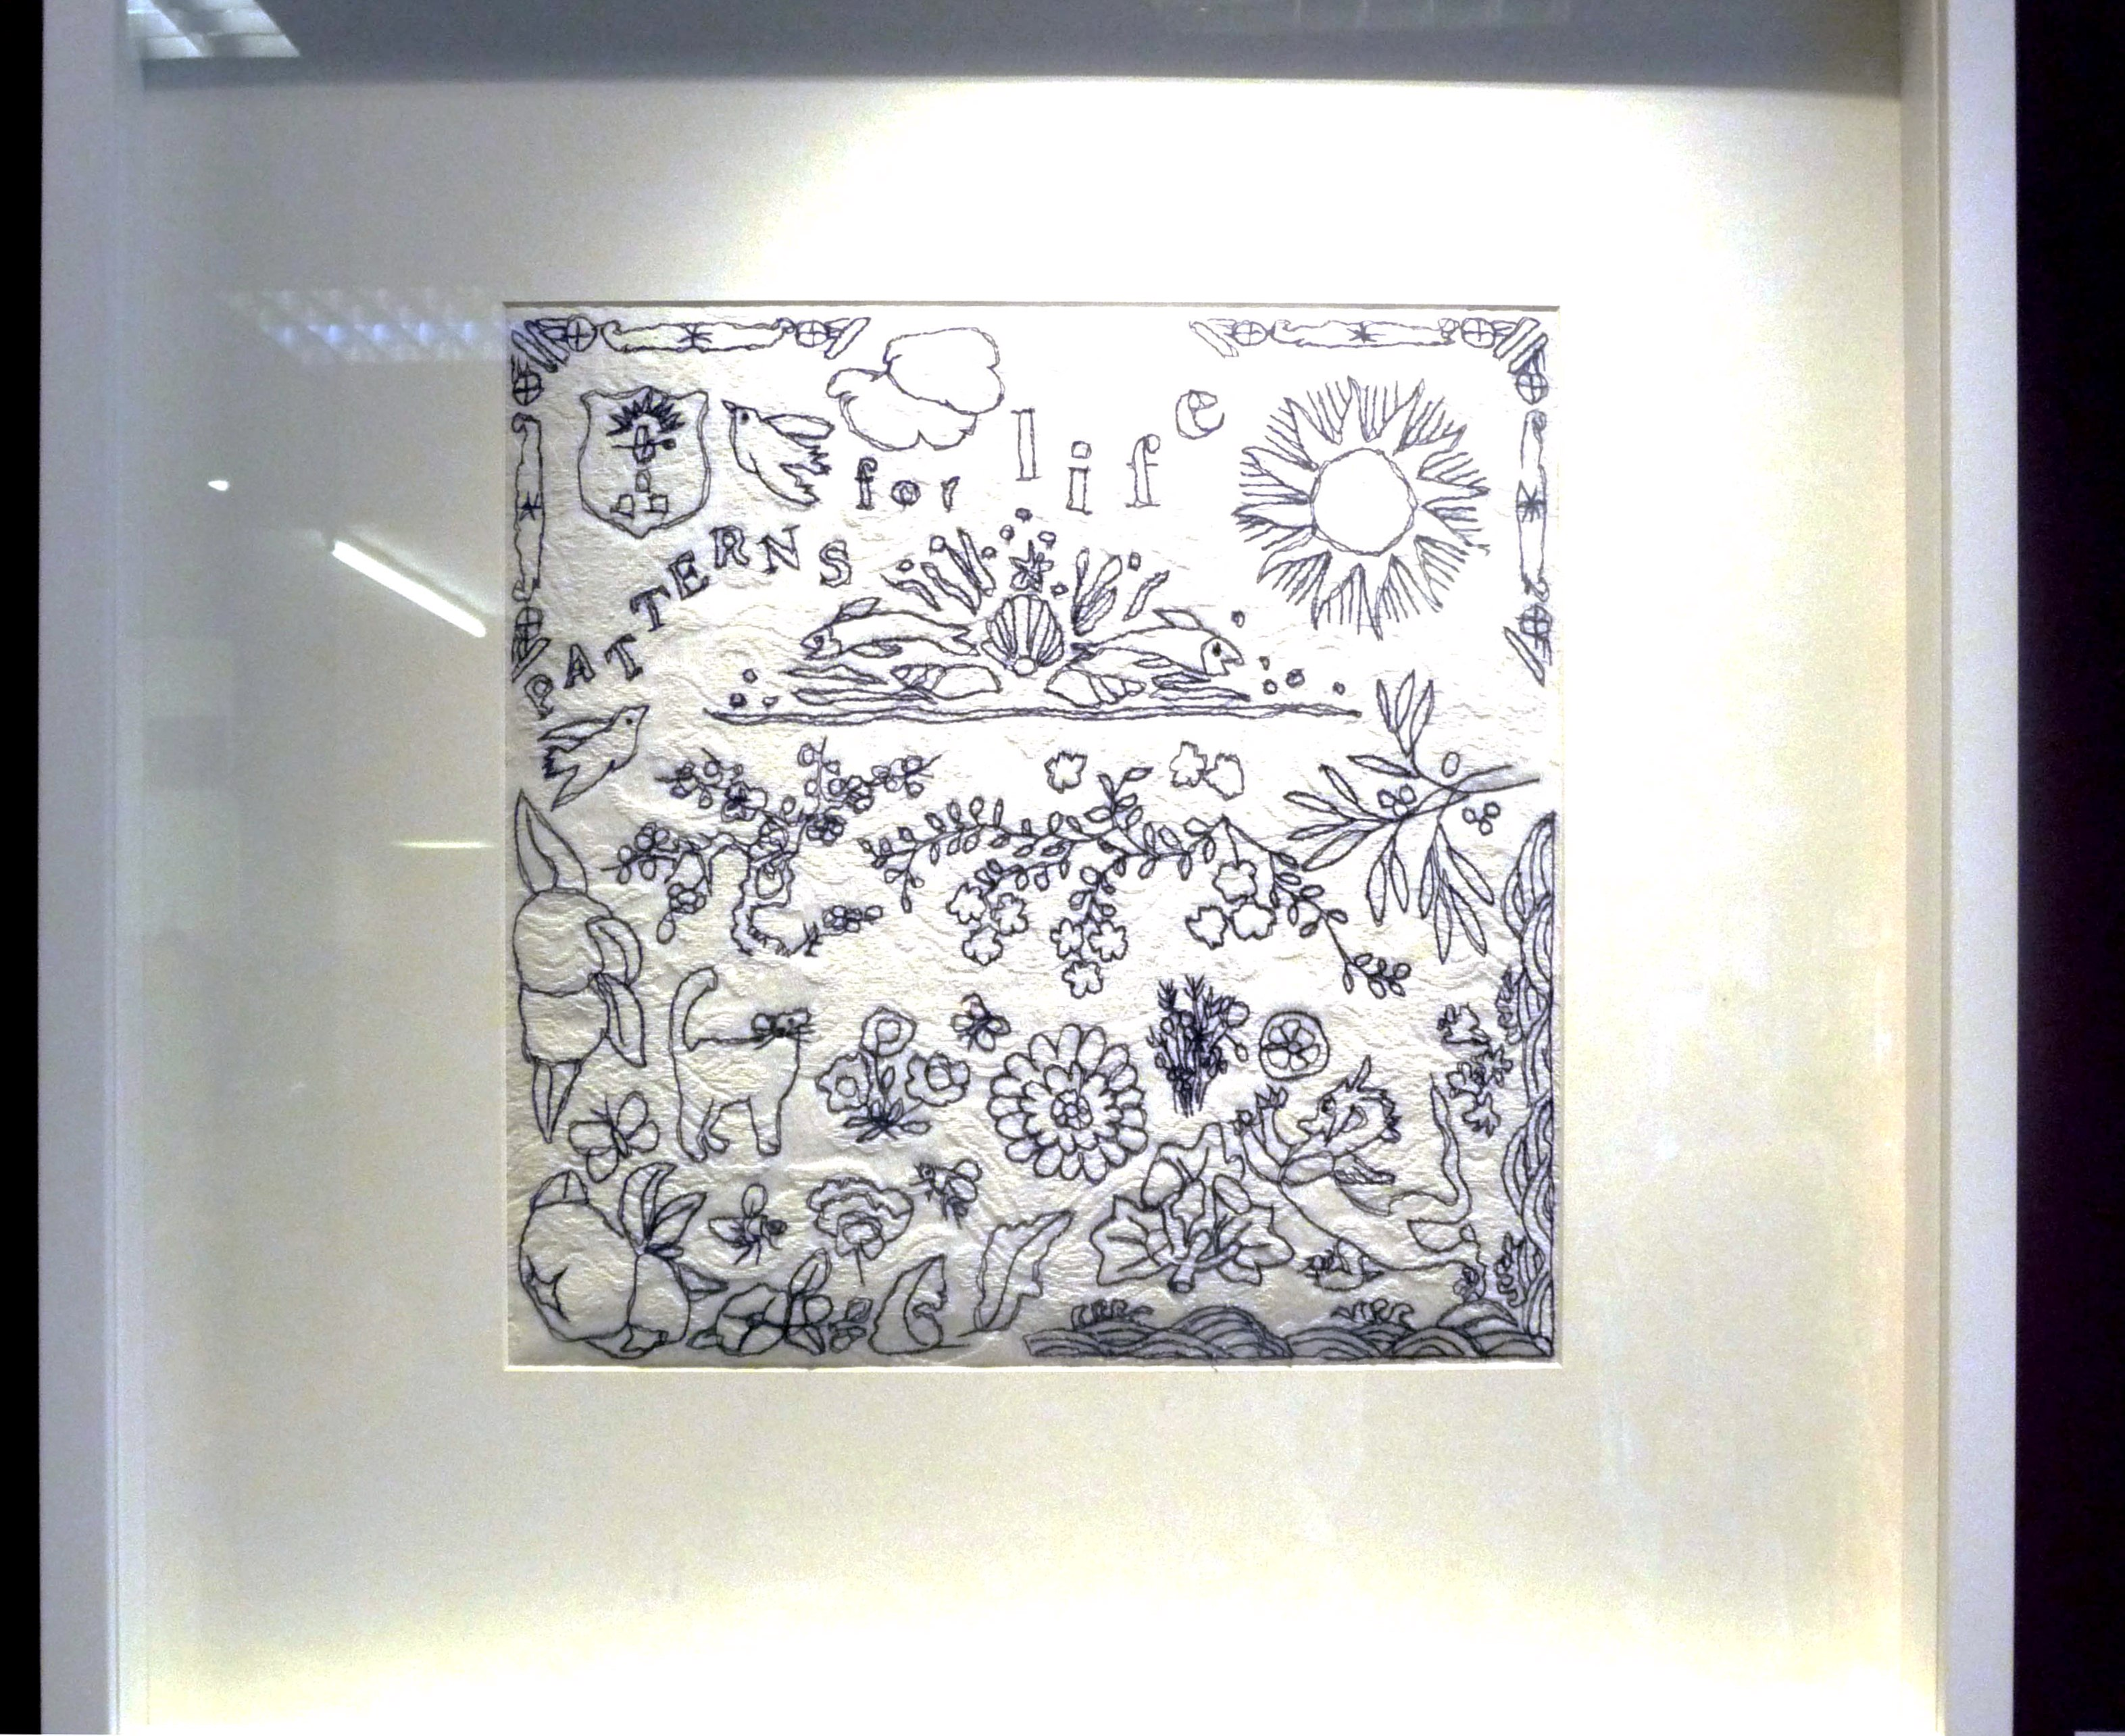 PATTERNS FOR LIFE by Janet Wilkinson, machine stitch on curtain